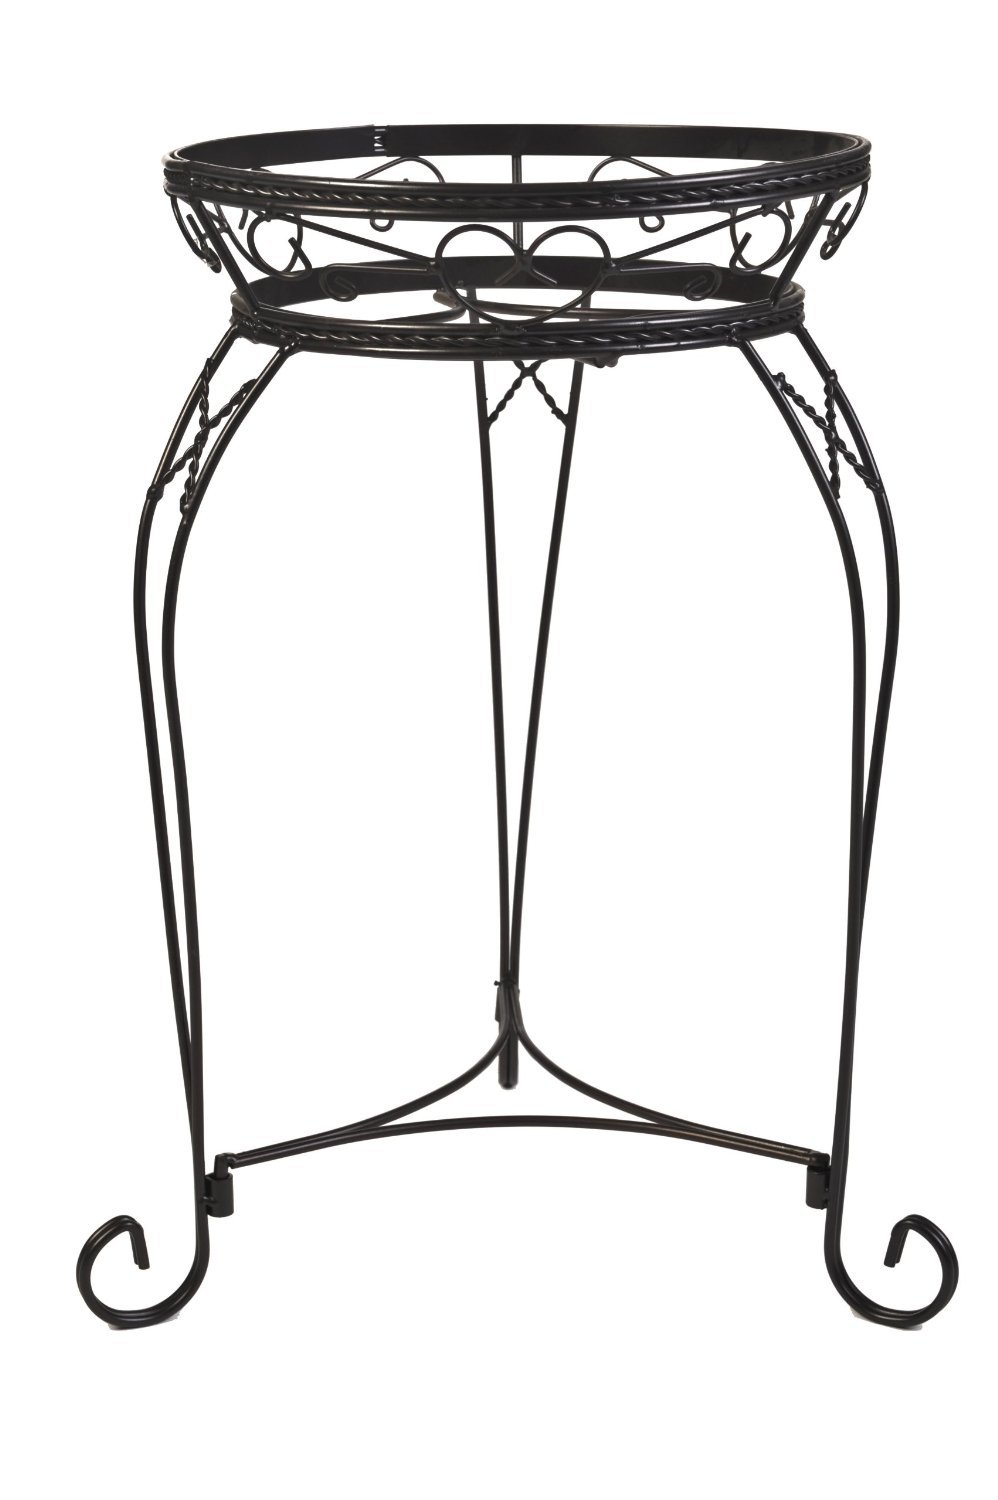 Indoor Outdoor Garden Metal Wire Flower Pot Plant Stand Scroll Braided Plant Stand Buy Garden Wire Plant Stands Antique Metal Plant Stand Metal Corner Plant Stand Product On Alibaba Com